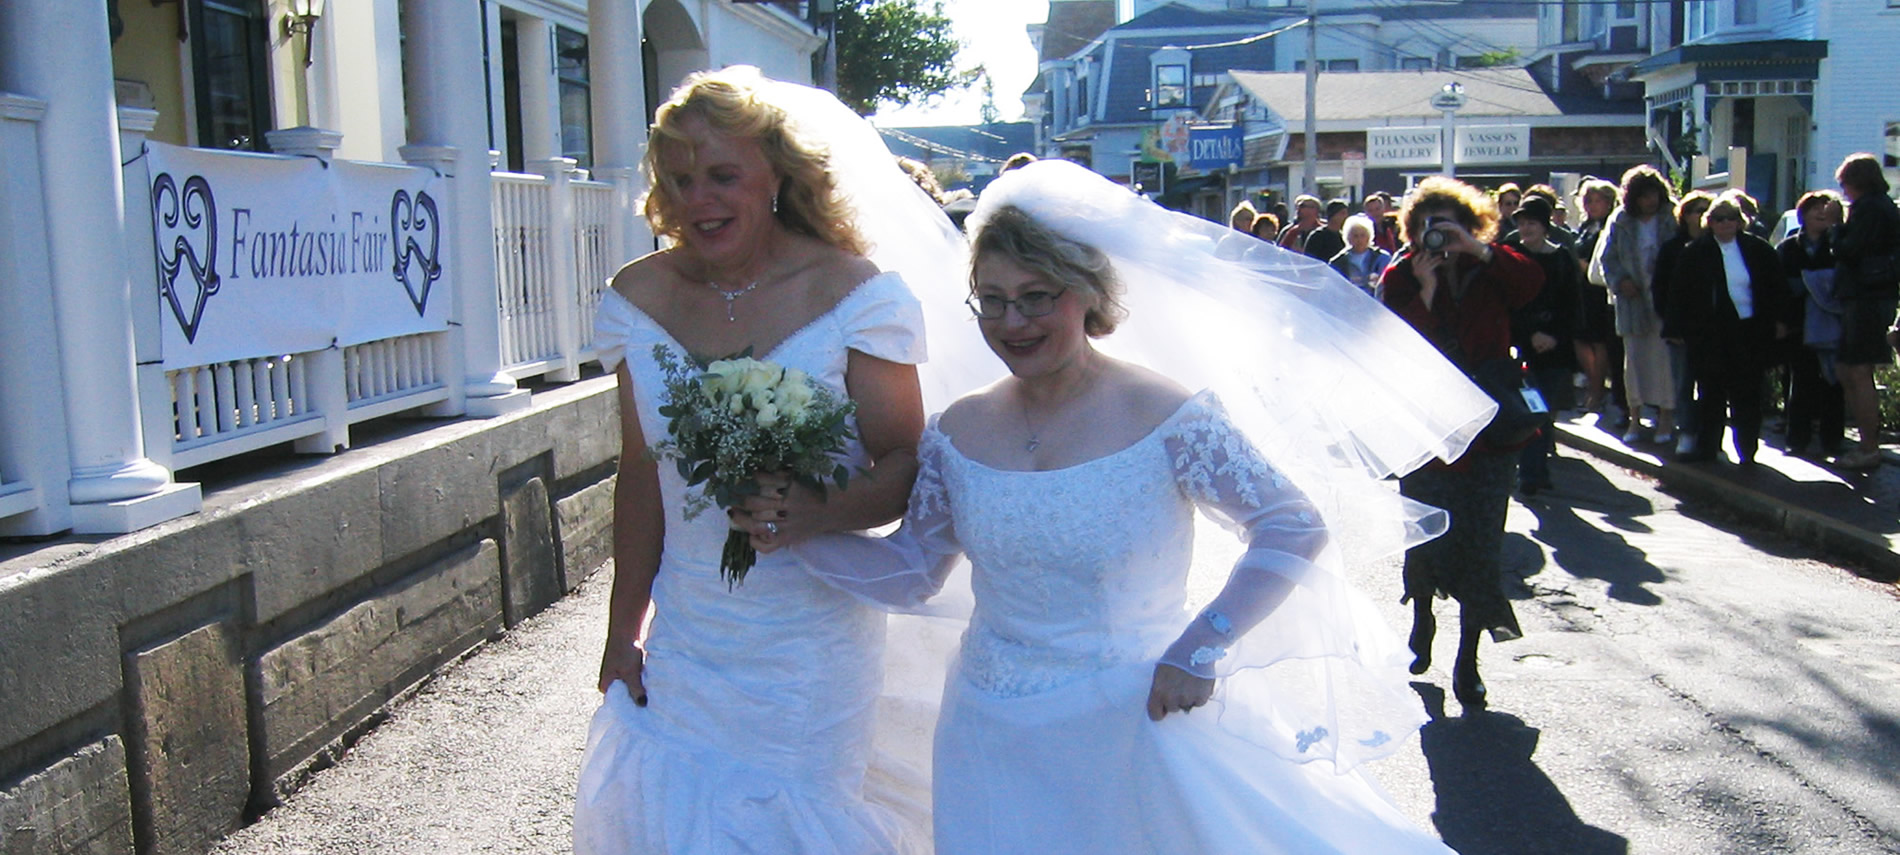 Robyn and Audri on their wedding day in October, 2006